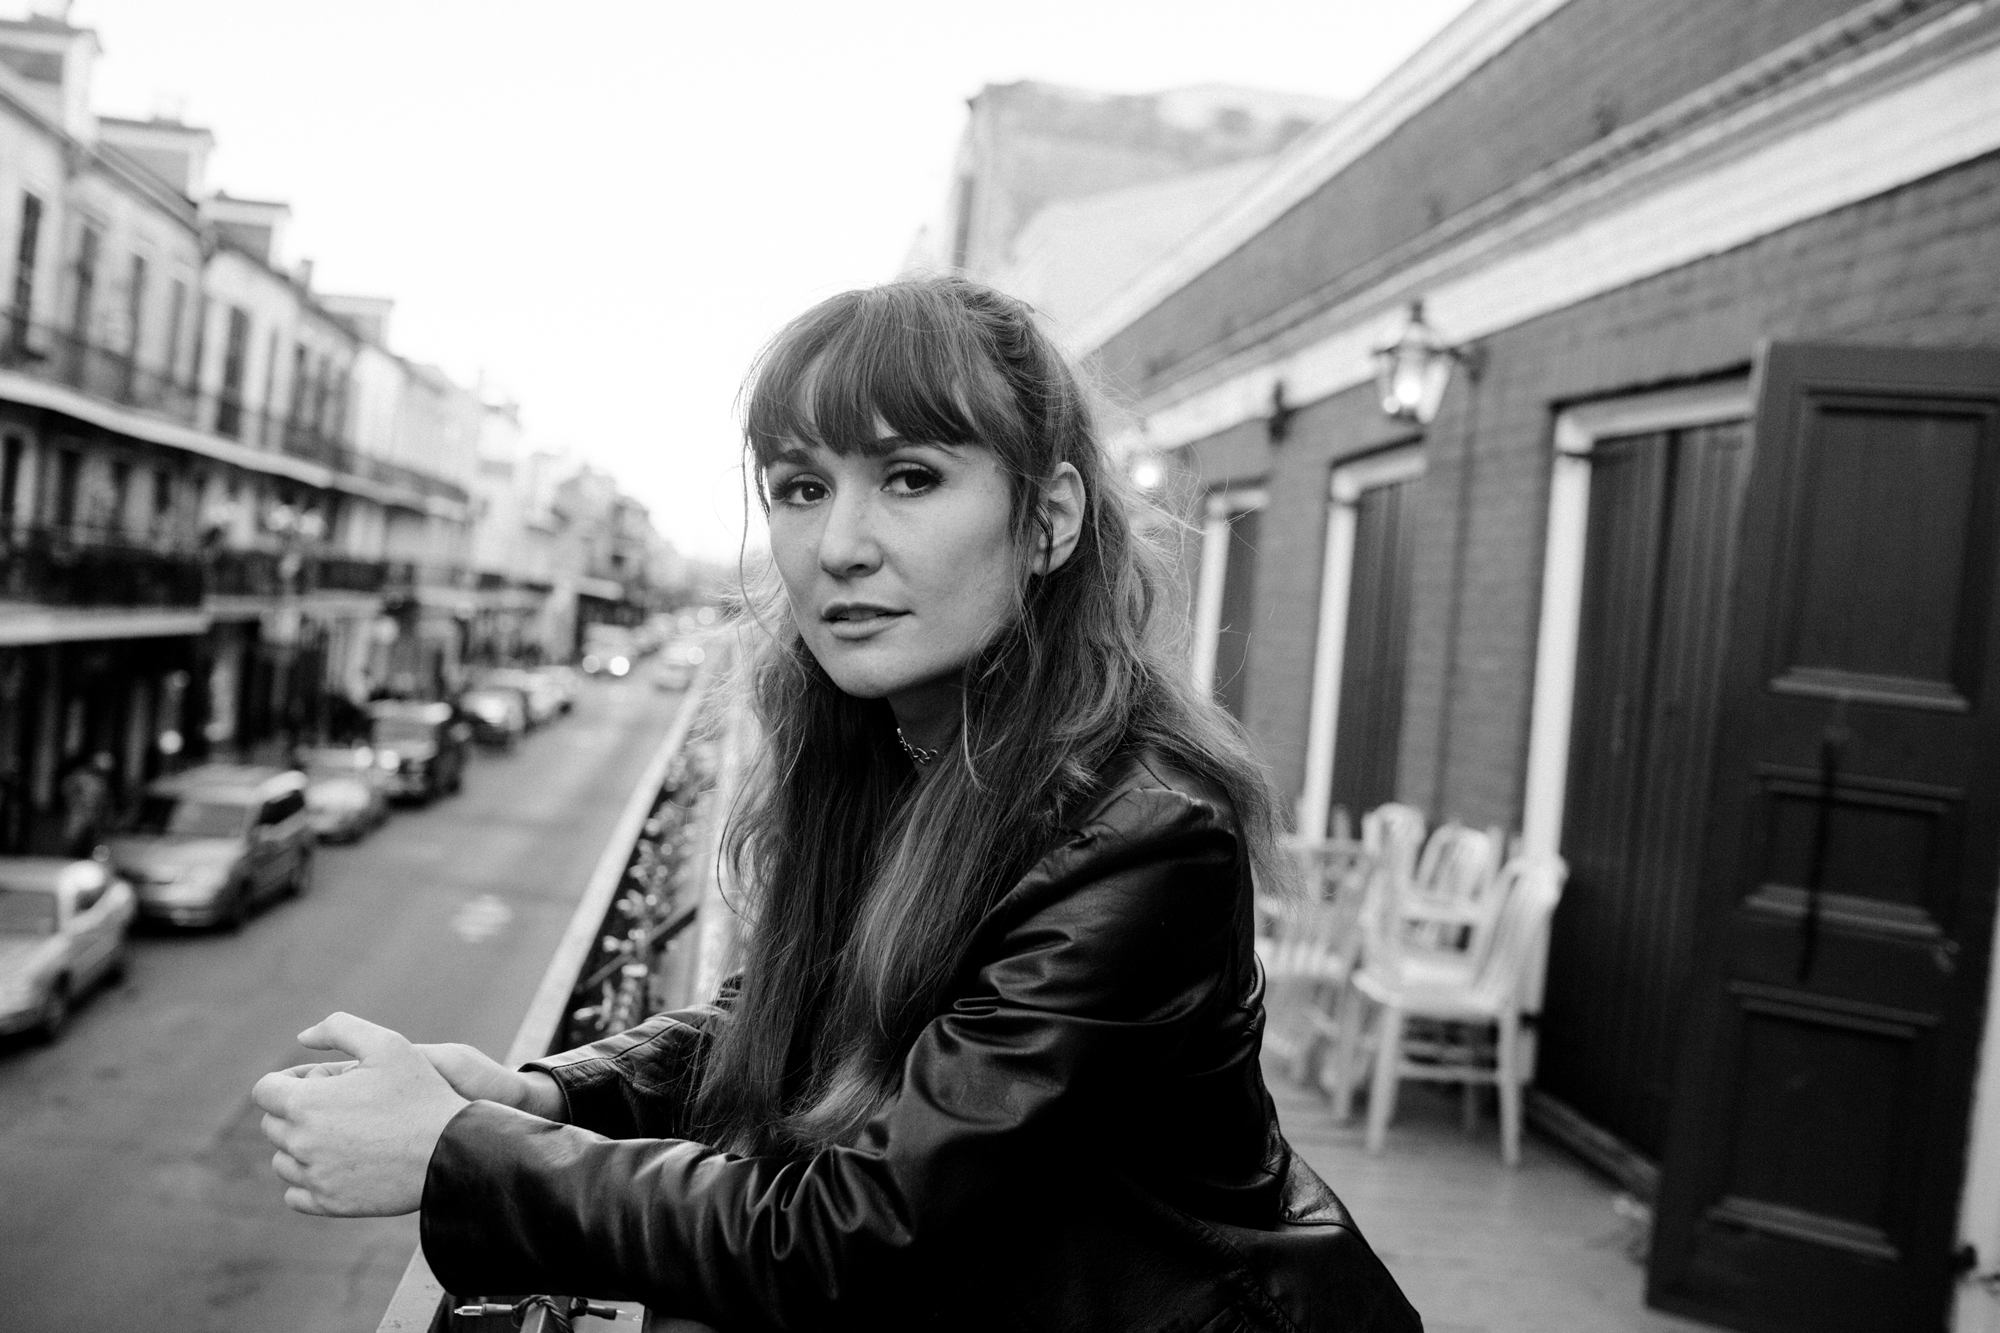 A black and white photo of Esther Rose leaning on a balcony and looking directly at the camera. She is light-skinned and has long hair that's halfway pulled up. She's wearing a leather jacket and a choker. We can see the French Quarter in the background, out of focus. Photo by Akasha Rabut.